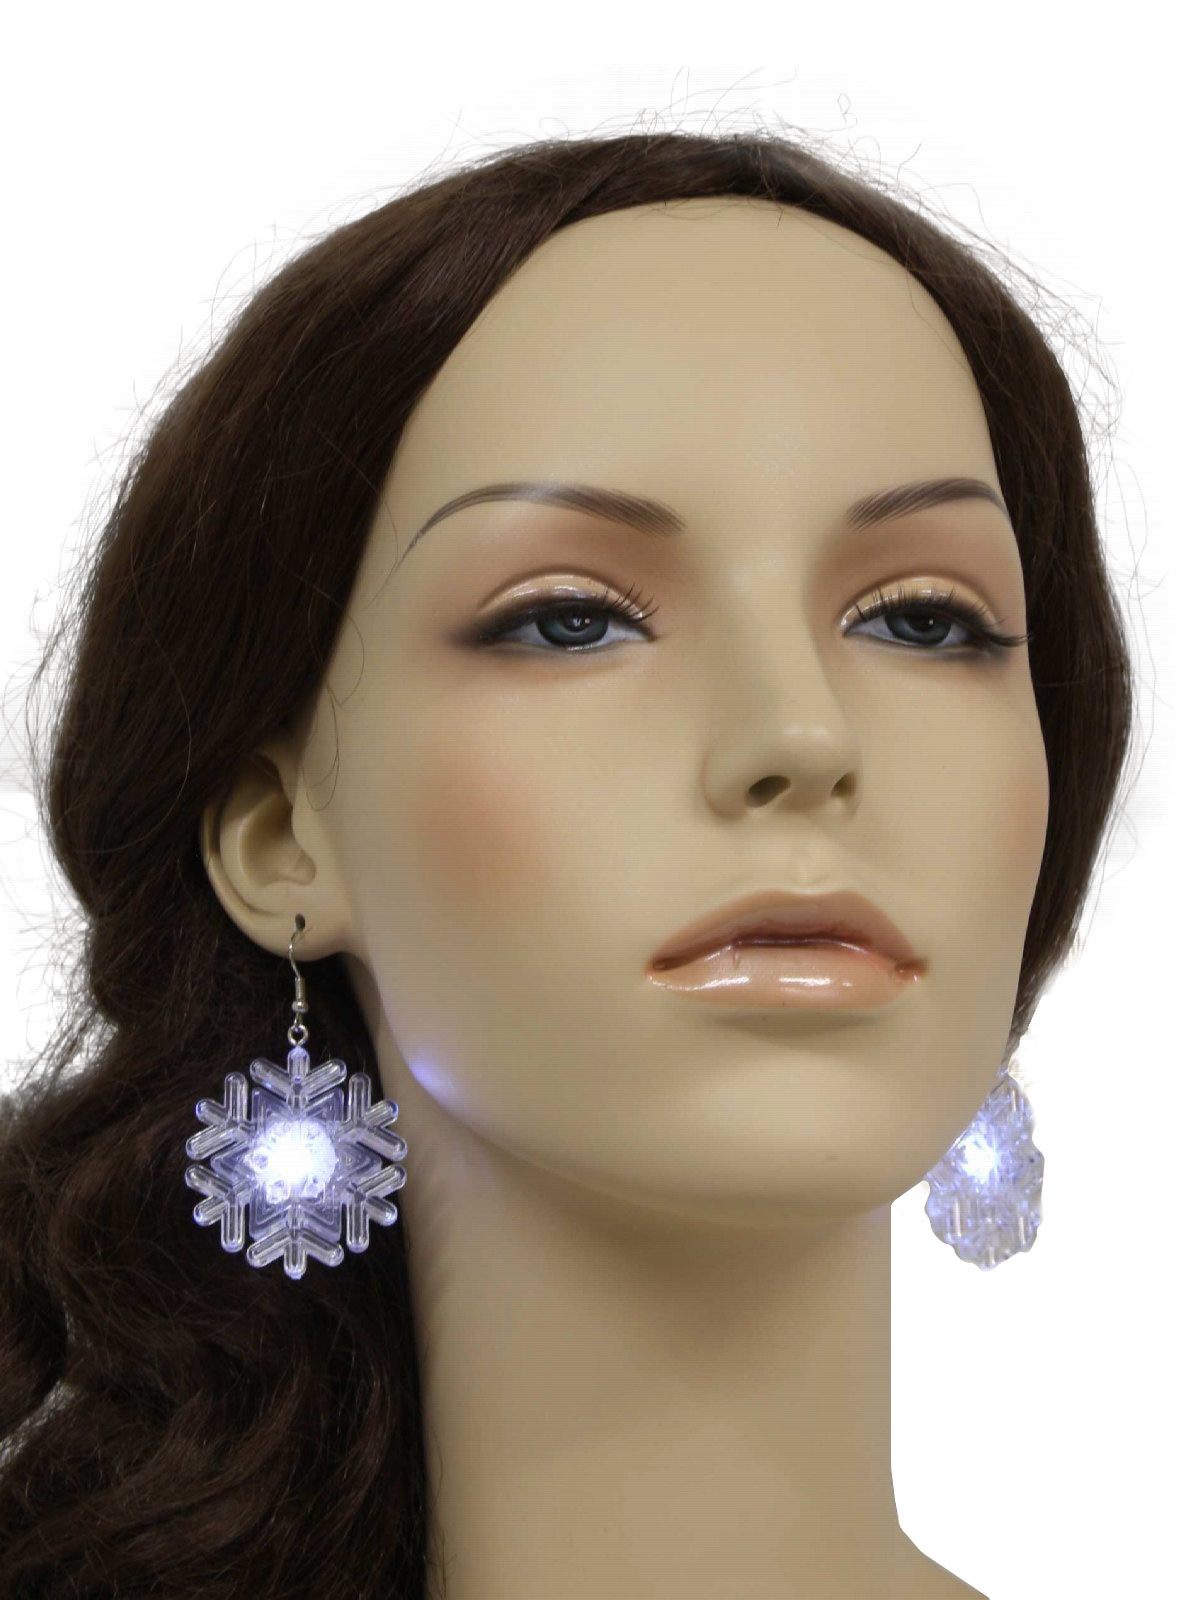 Womens Light Up Christmas Snowflake Earrings: 90s -Flashing ...